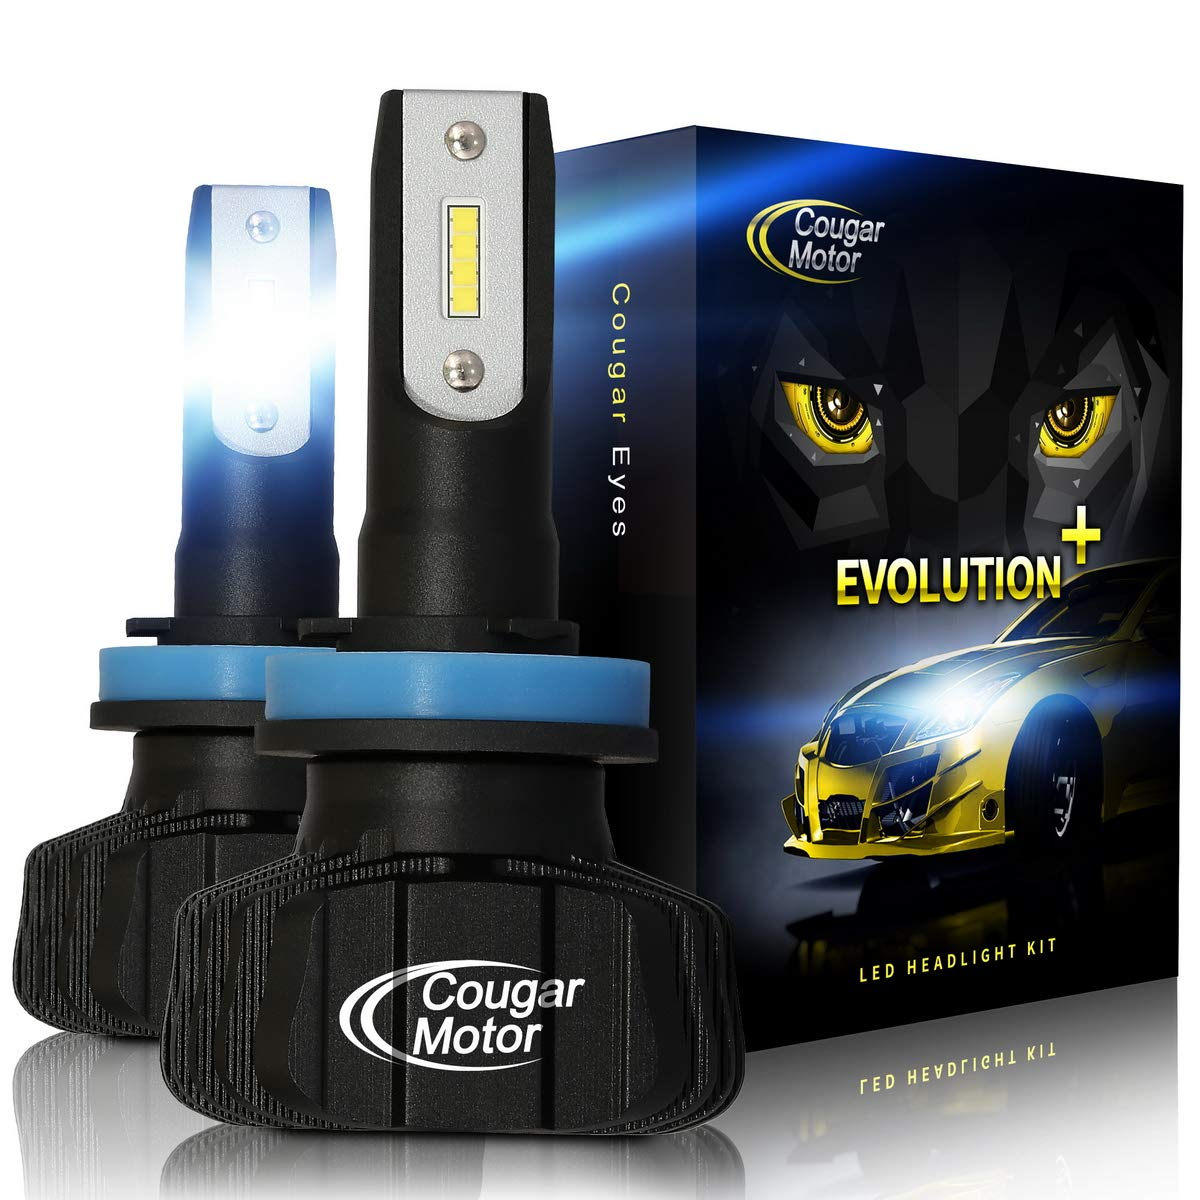 Cougar Motor H11 Led headlight bulb, 9600Lm 6500K (H8 H9) Fanless All-in-One Conversion Kit - 3D Bionic Technology